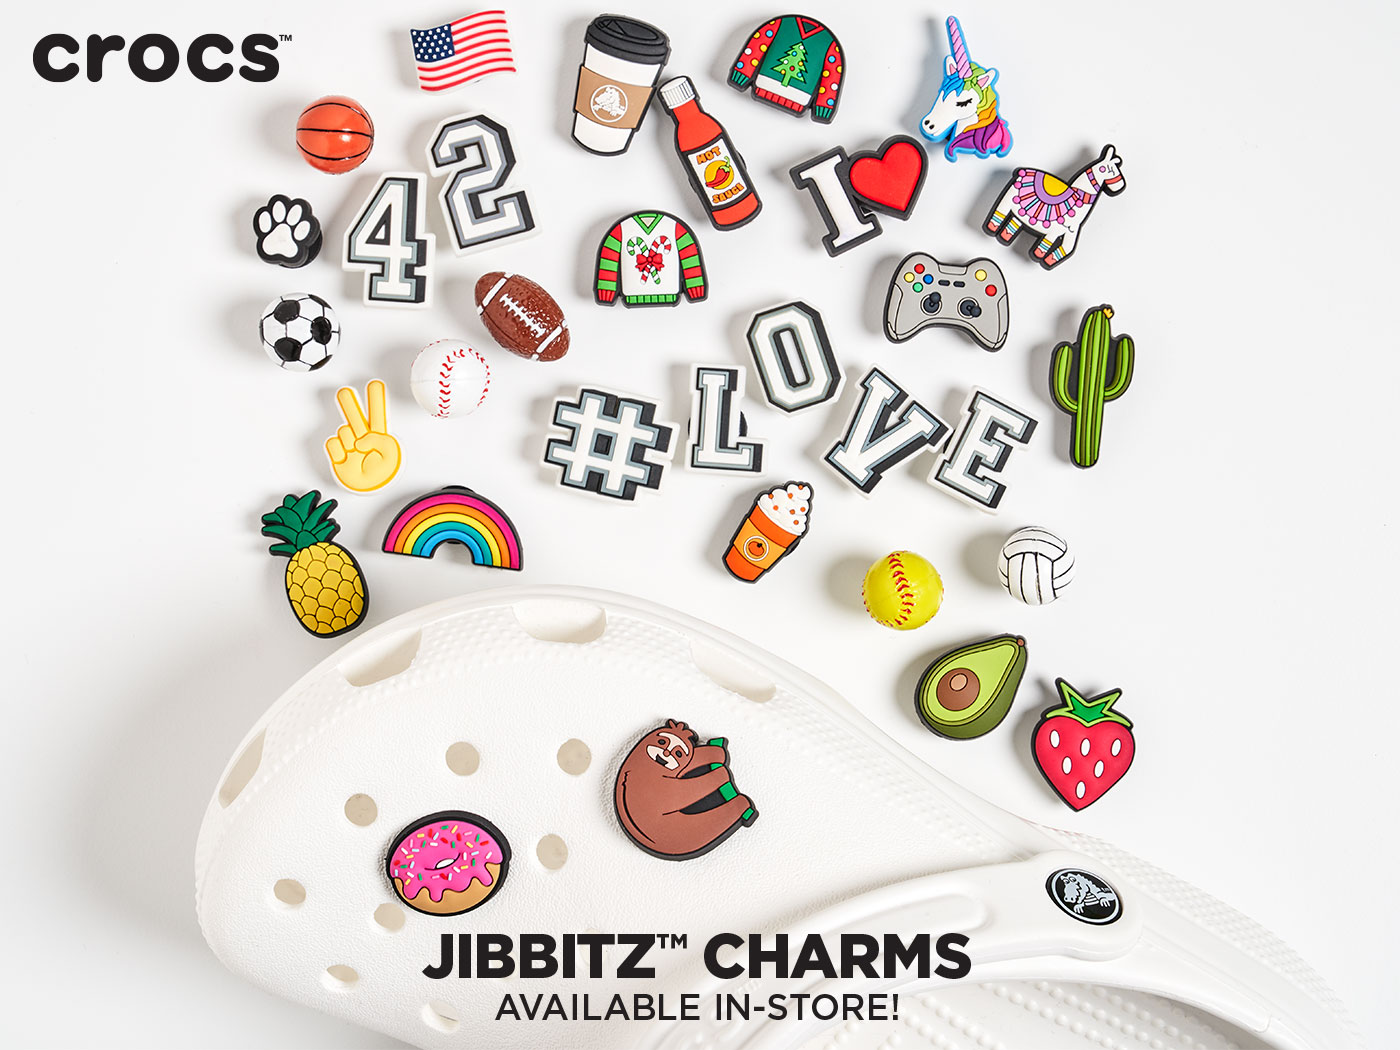 Personalize your Crocs with JJibbitz Charms, available in store only.